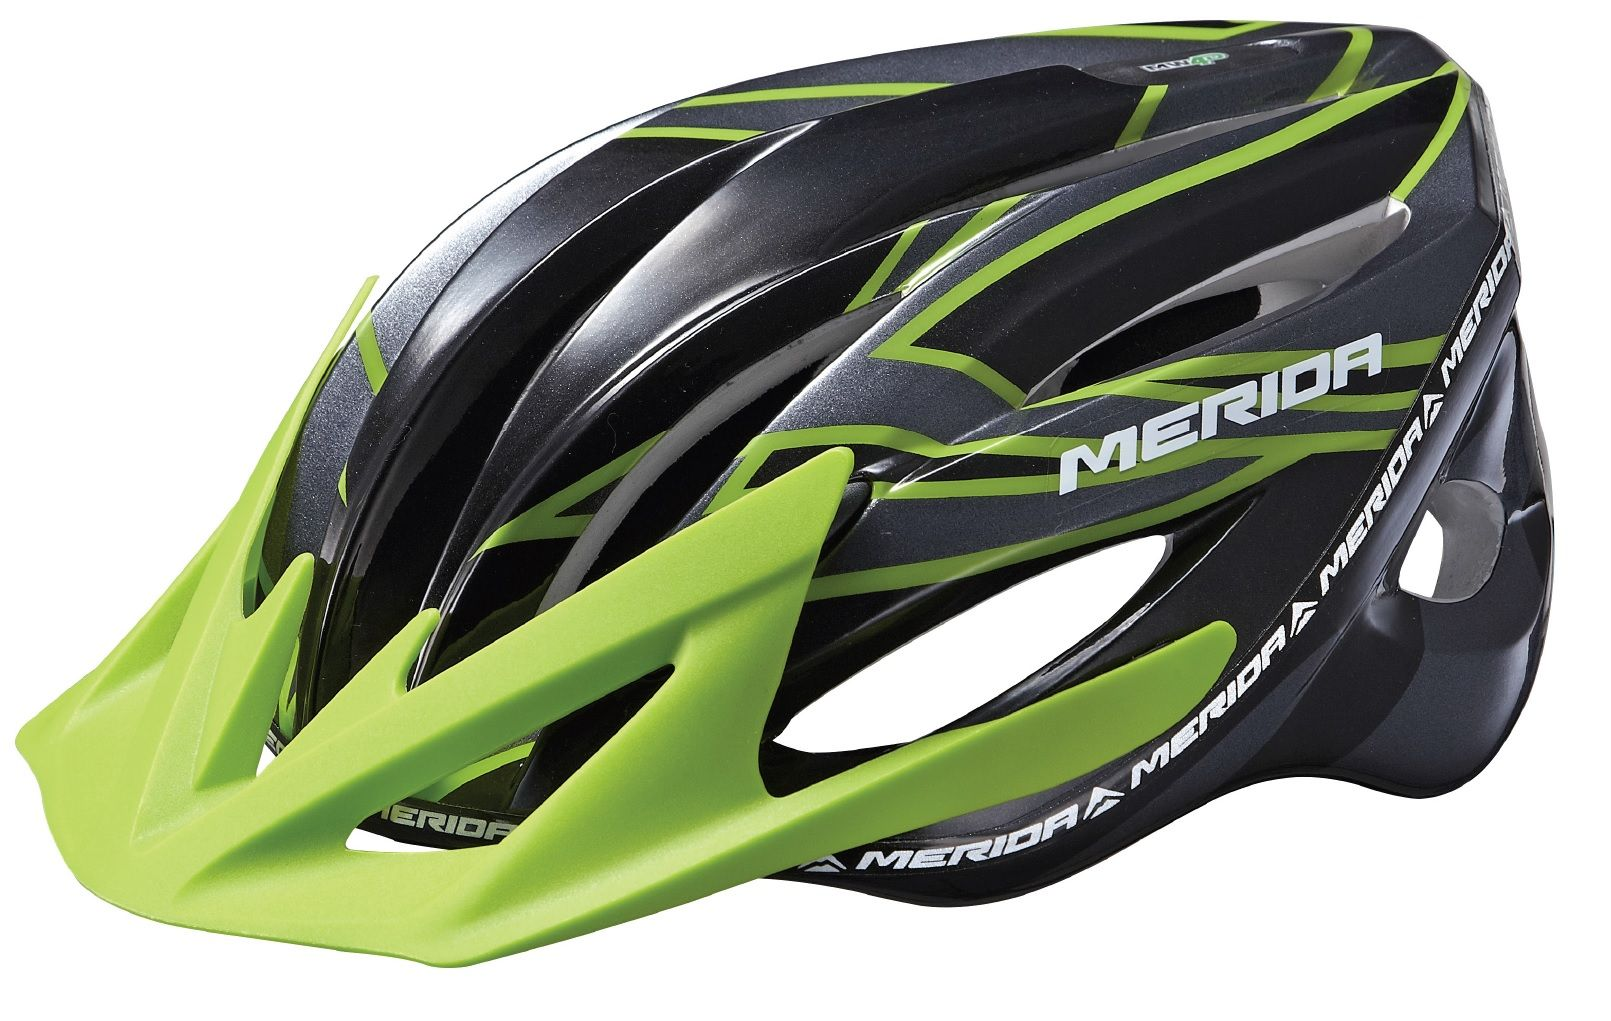 Přilba MERIDA MG2 matt black/shinny green L (59-65cm)